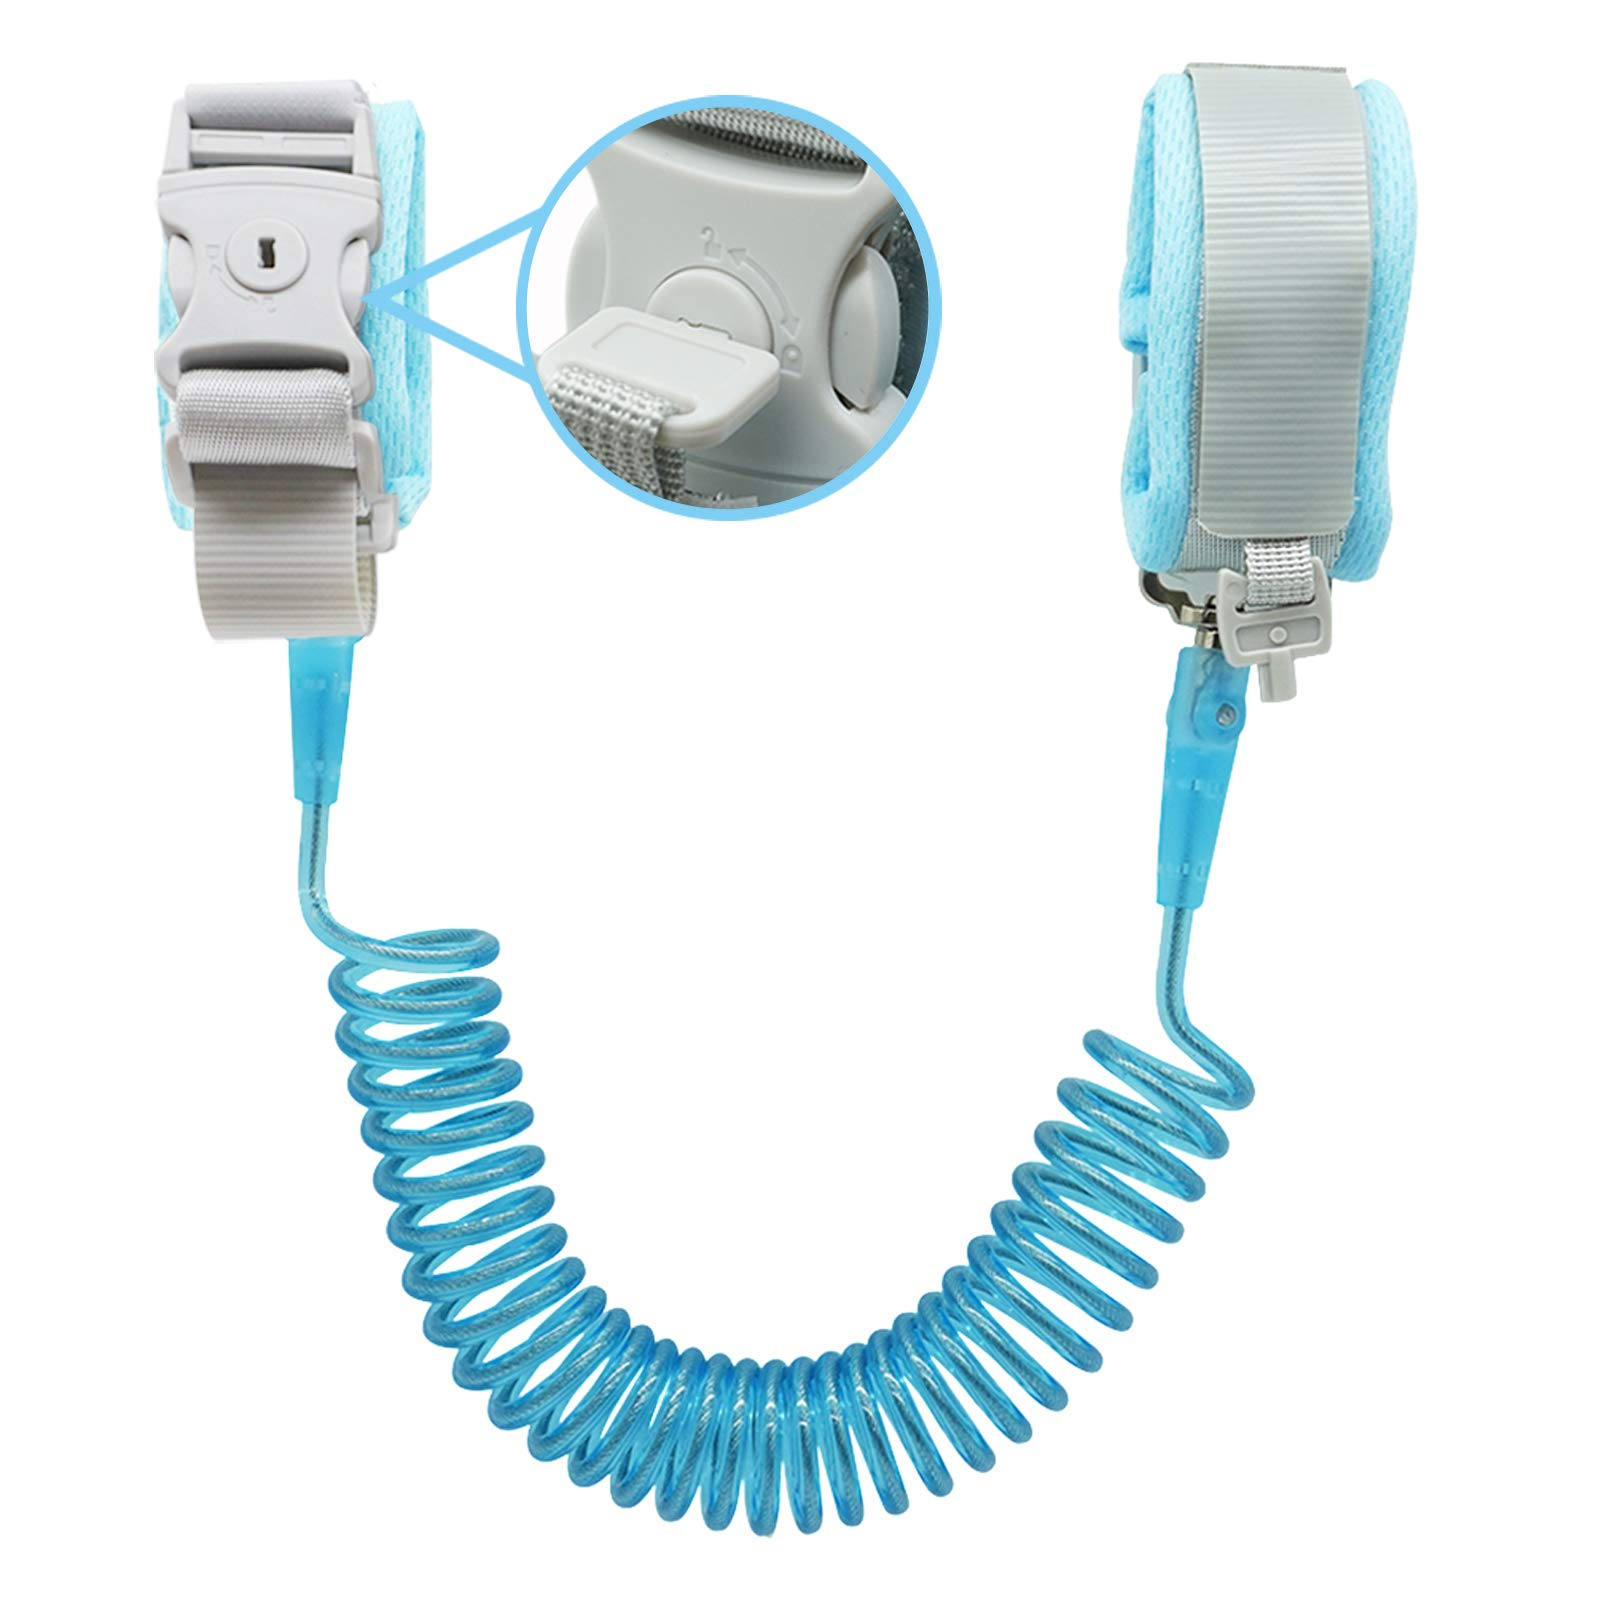 Anti Lost Wrist Link (8.2ft), Socub Breathable Toddler Leash Wrist for Child Safety, Wrist Link for Kids with Key Lock, Blue